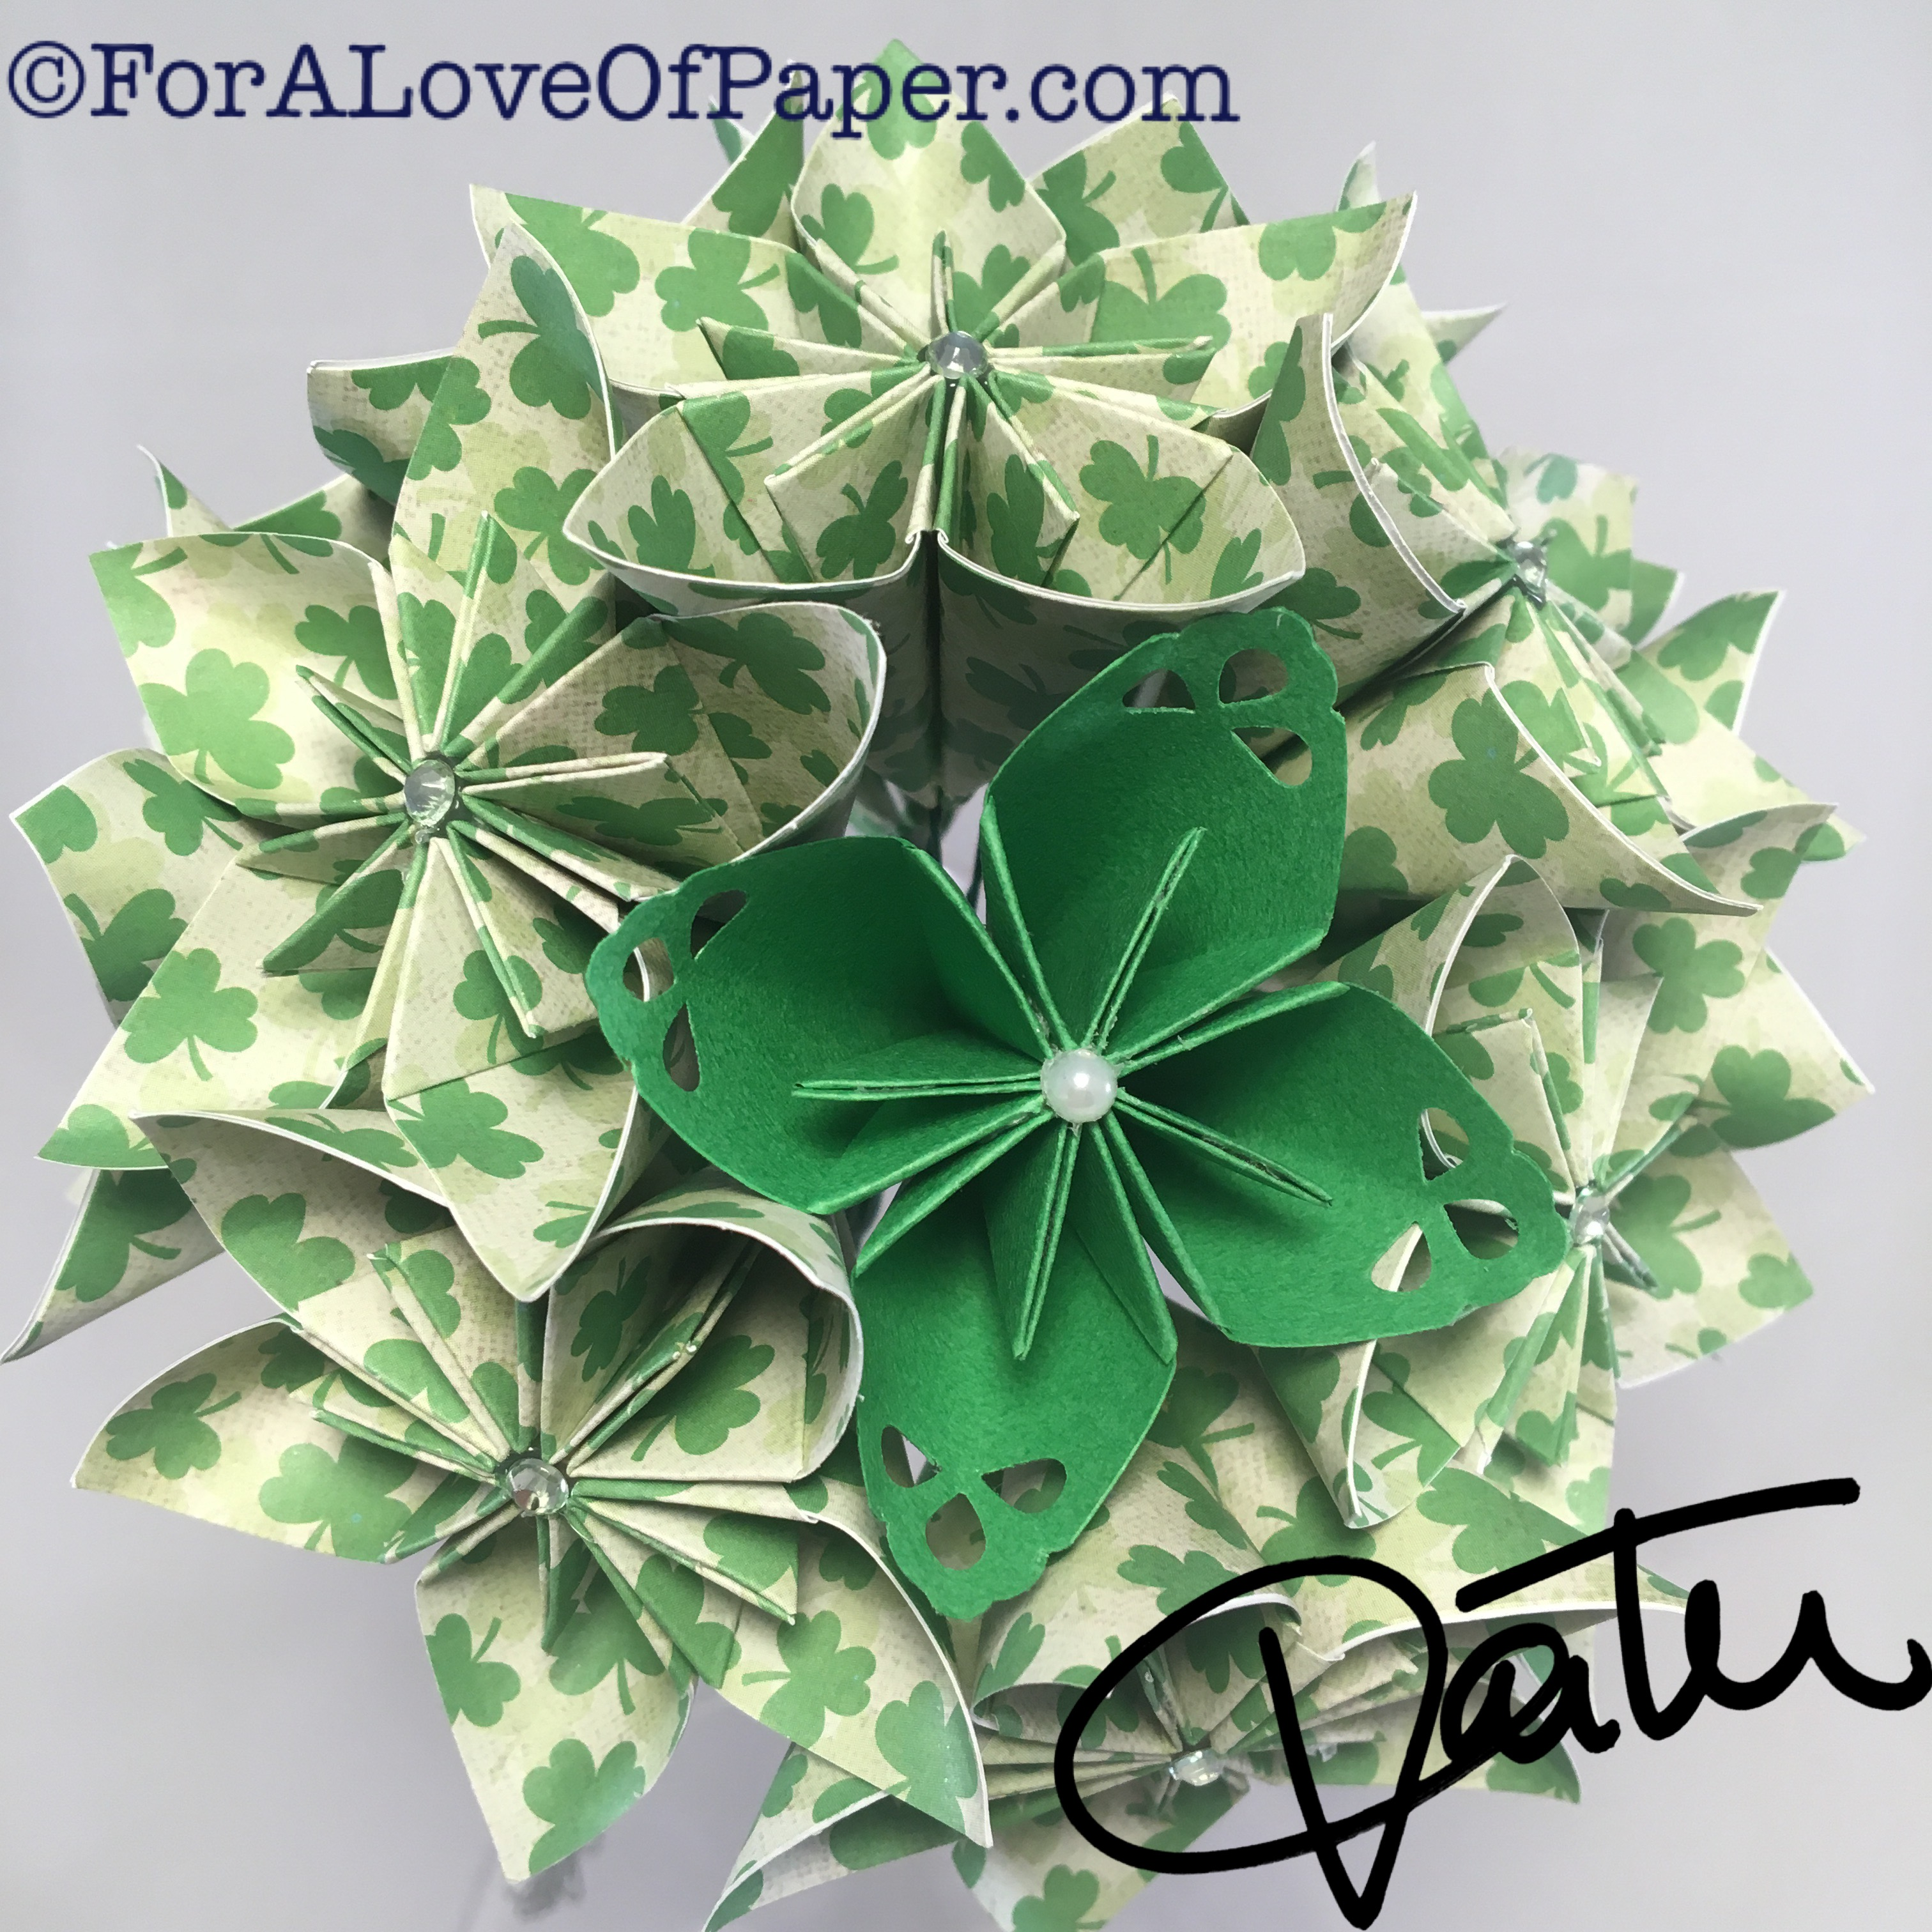 Paper flowers in green clover themed scrapbook paper